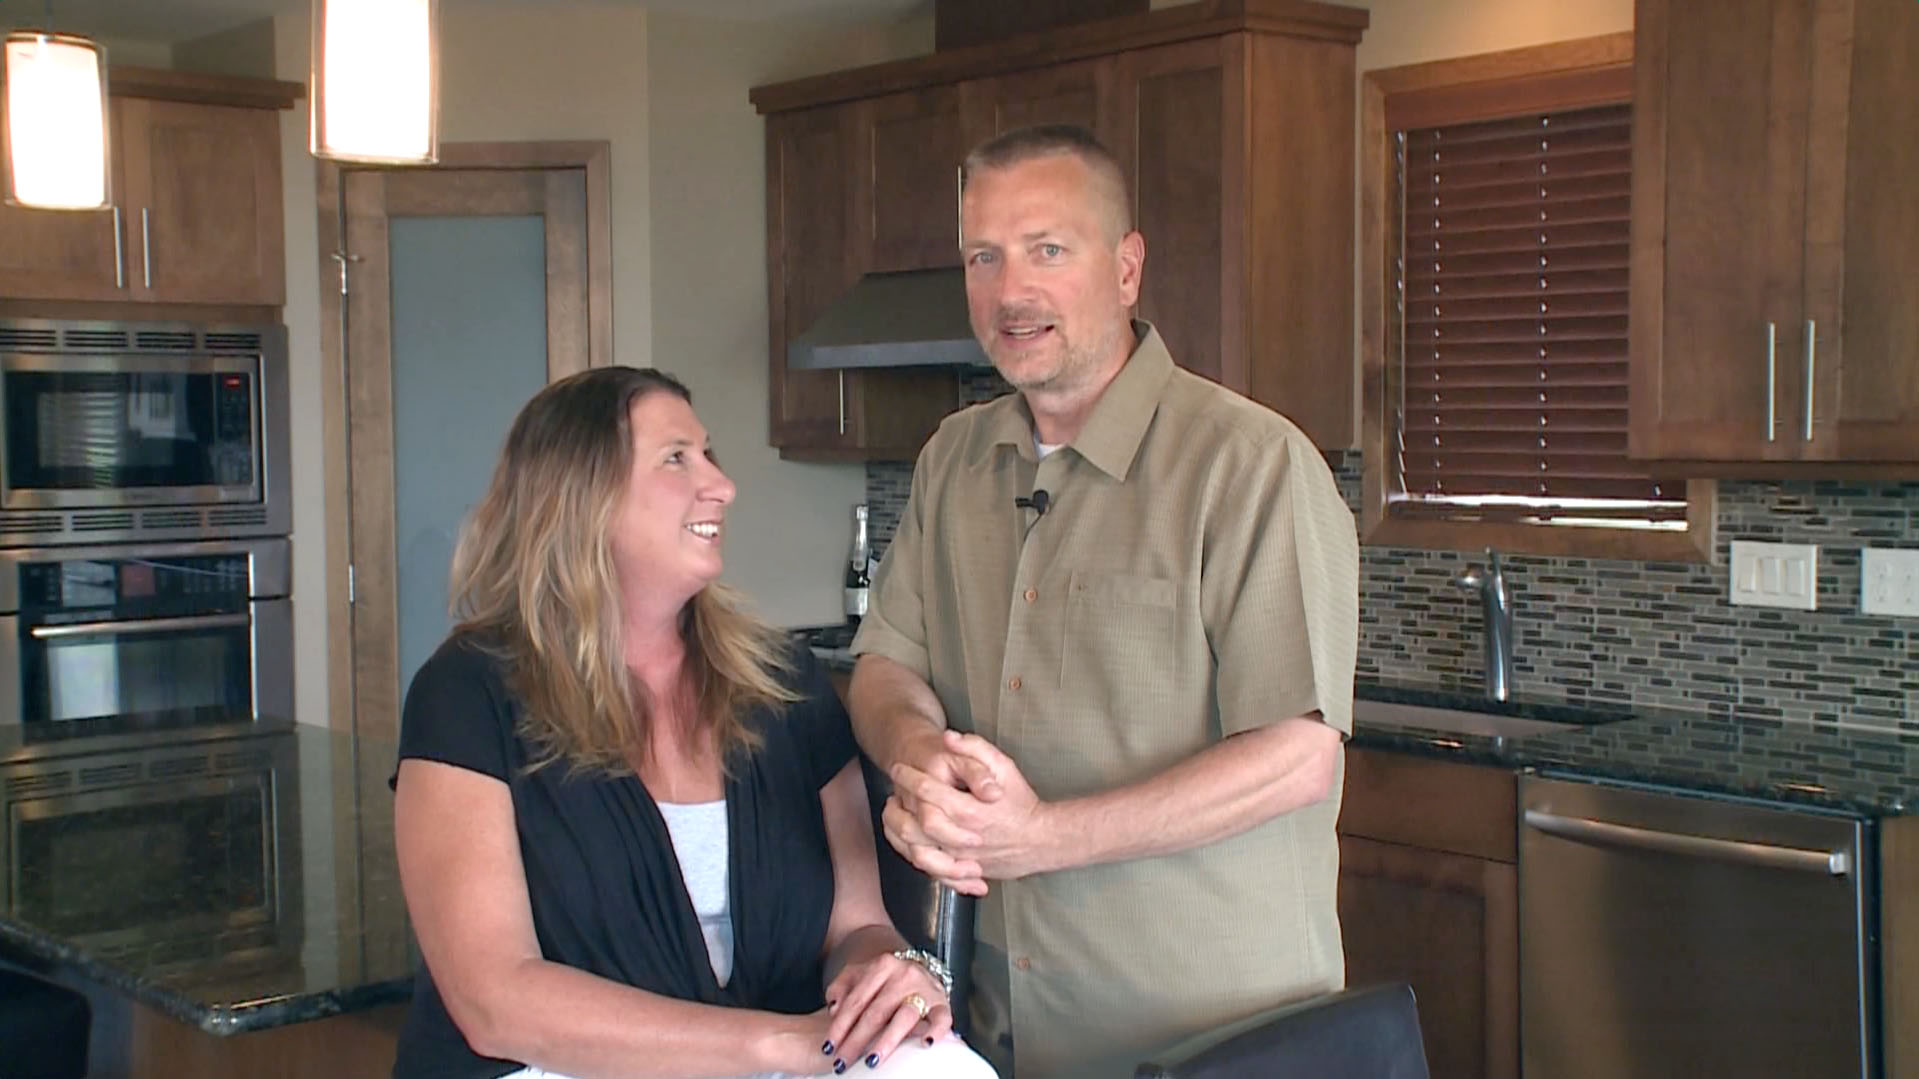 Treated Like Family – Joe & Paulette F. Testimonial